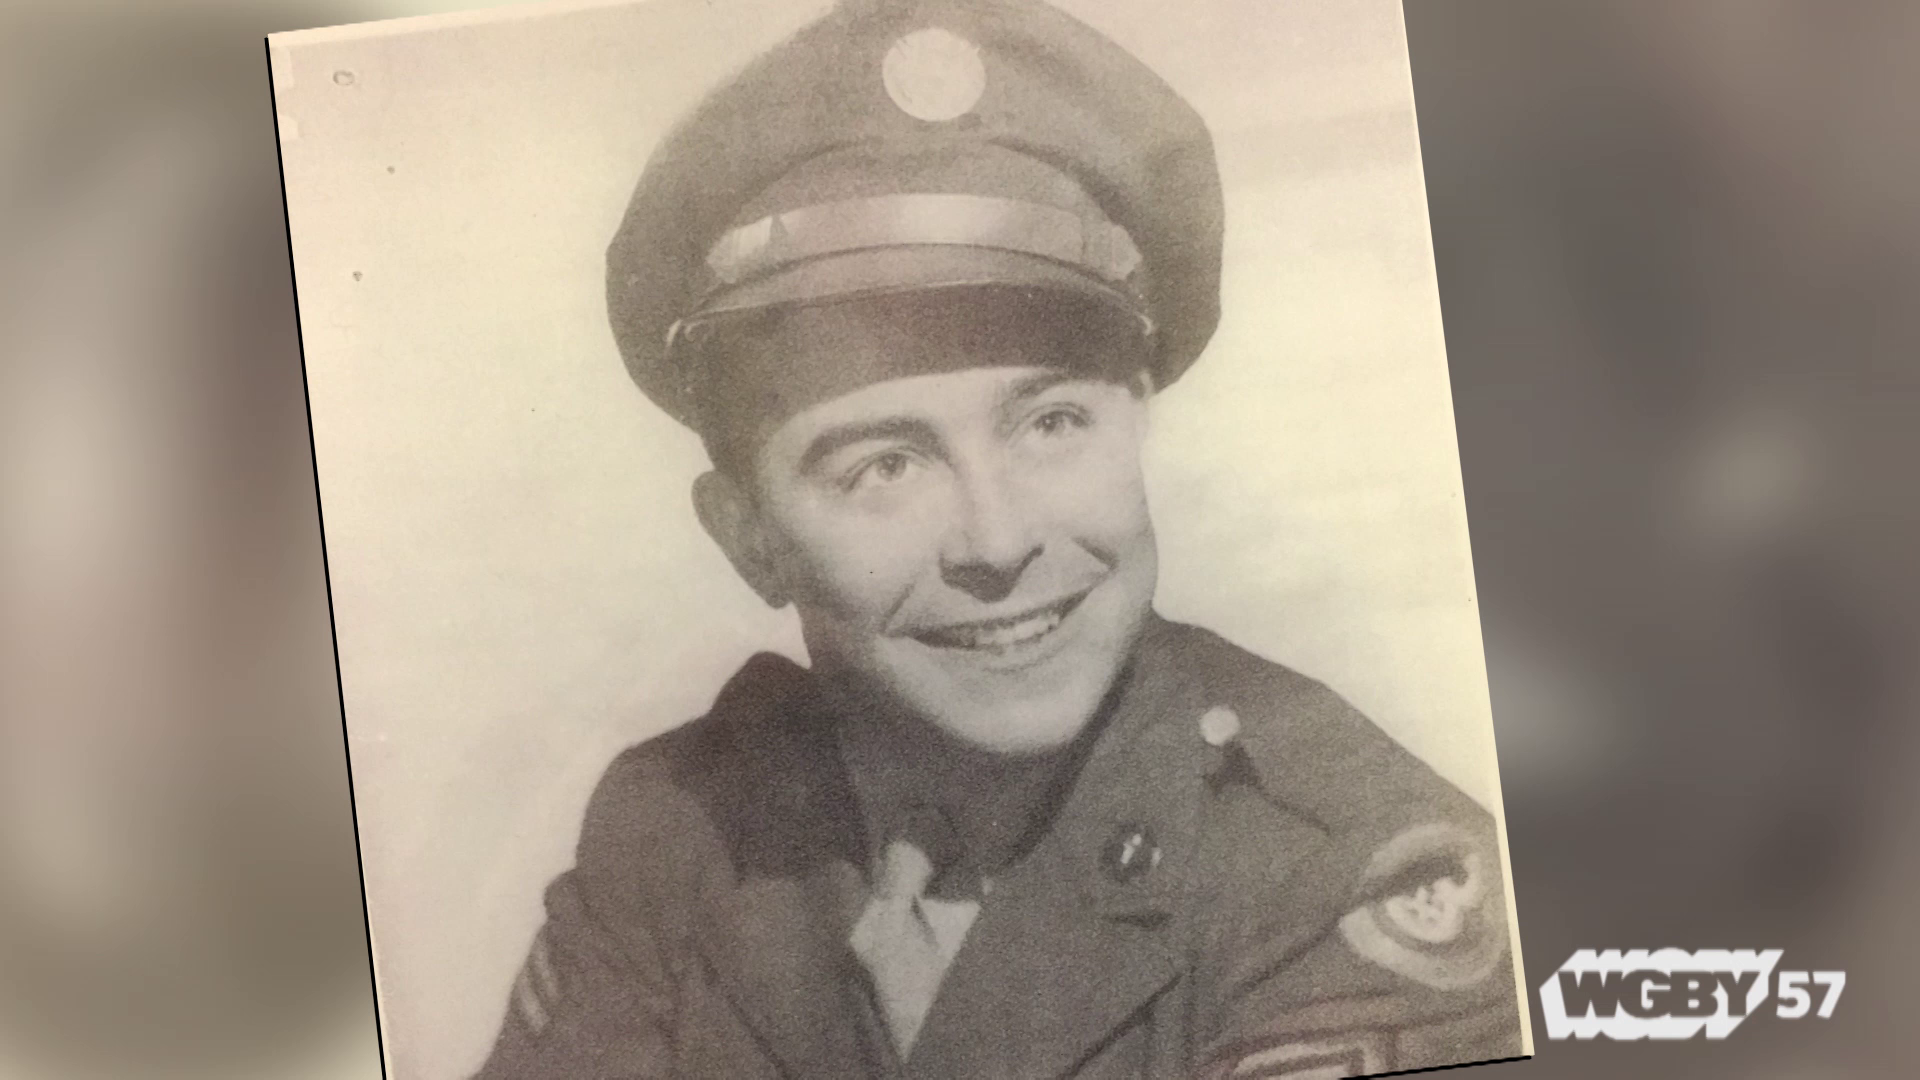 Jewish American WWII Veteran Murray Steingart Reflects on His Service